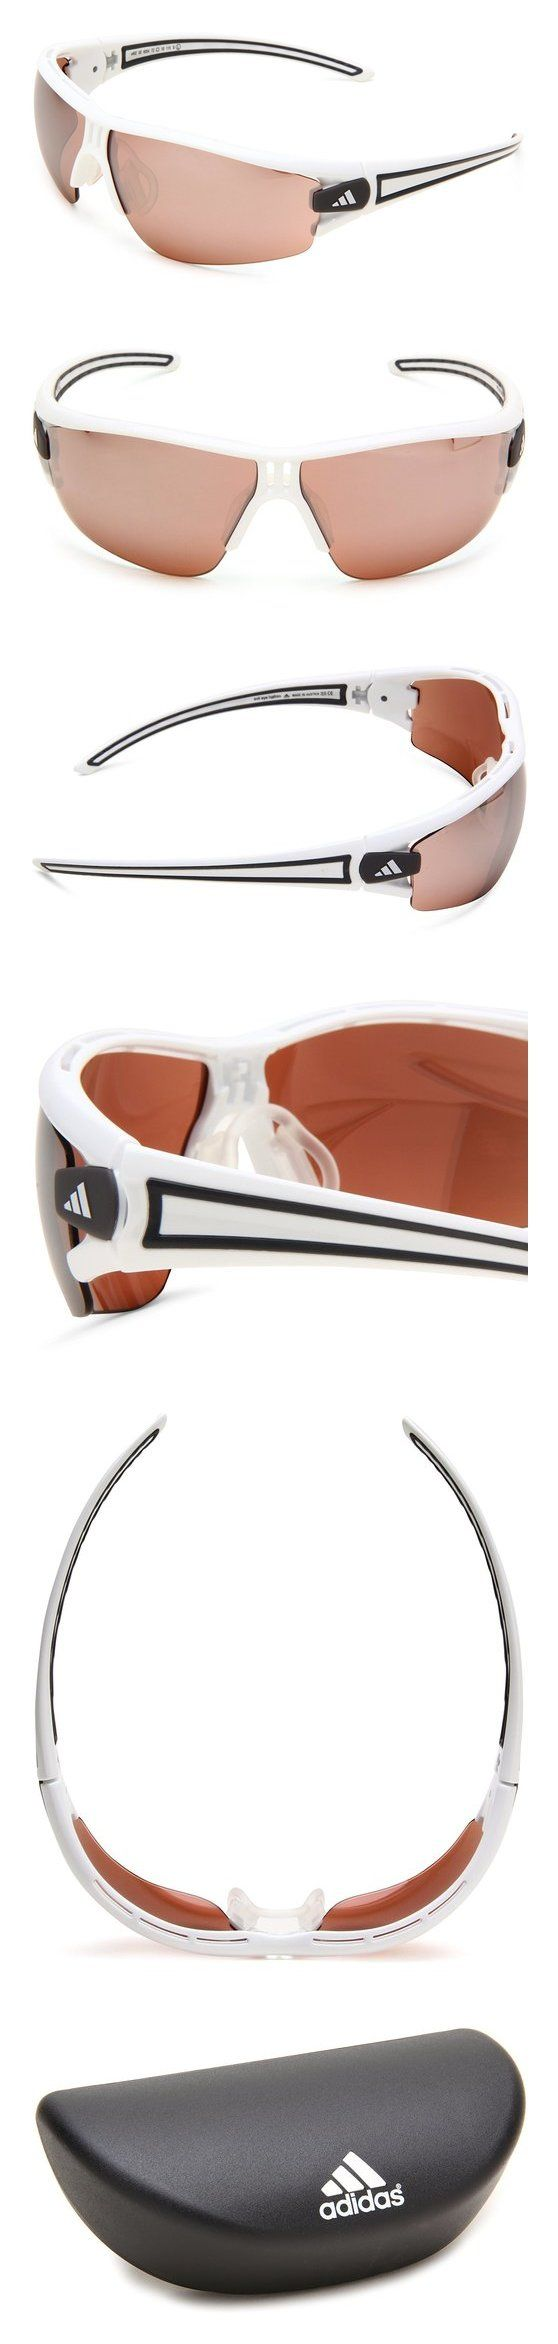 $127.06 - adidas Evil Eye Halfrim L a402 6059 Rectangle Sunglasses Shiny White/Anthracite LST Active Silver #adidas